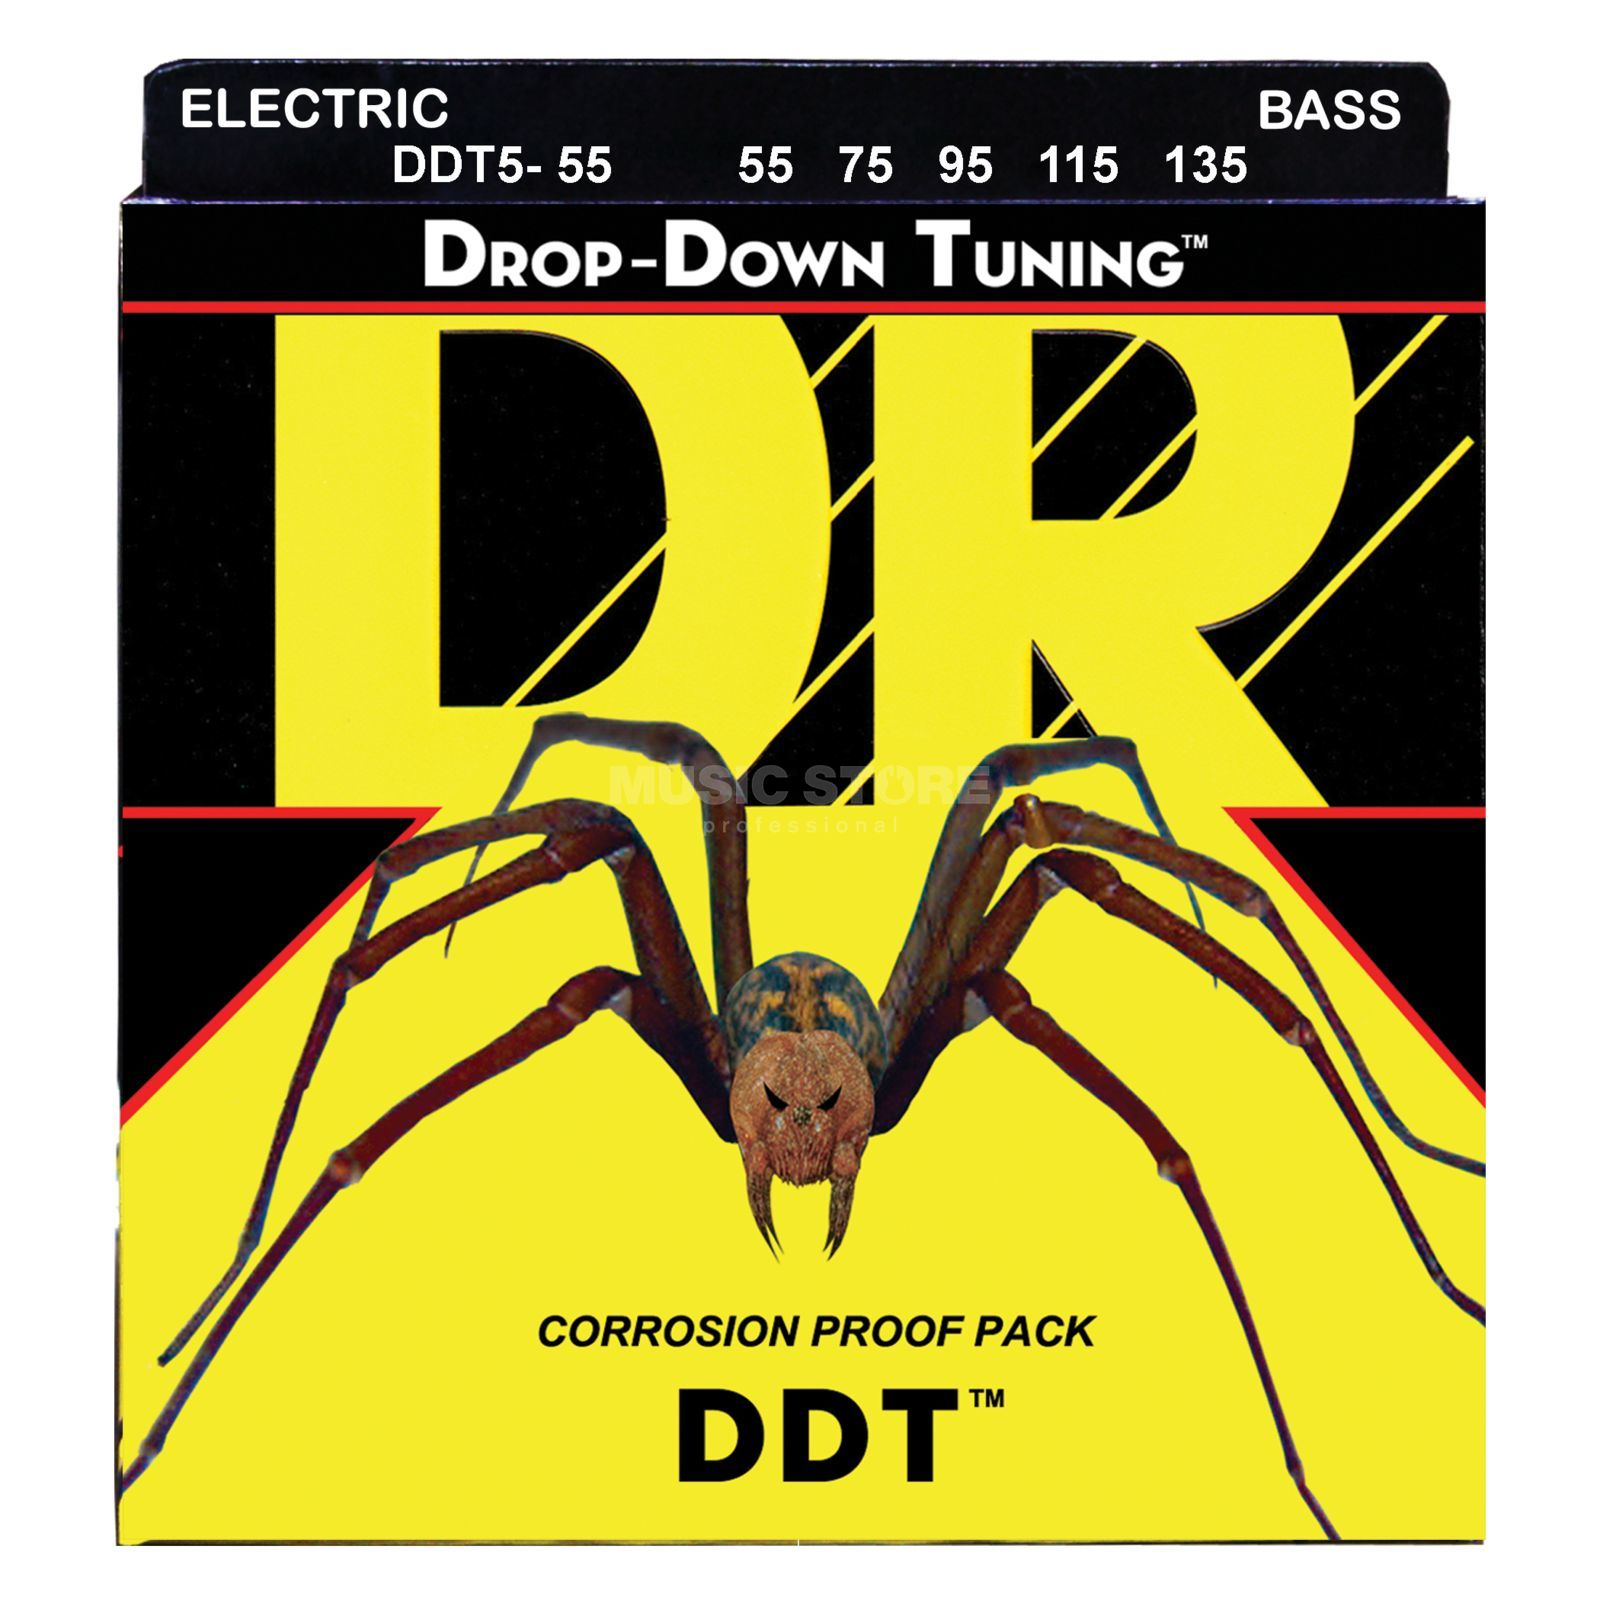 DR 5er bas 55-135 Drop-Down Tuning DDT5-55 Productafbeelding